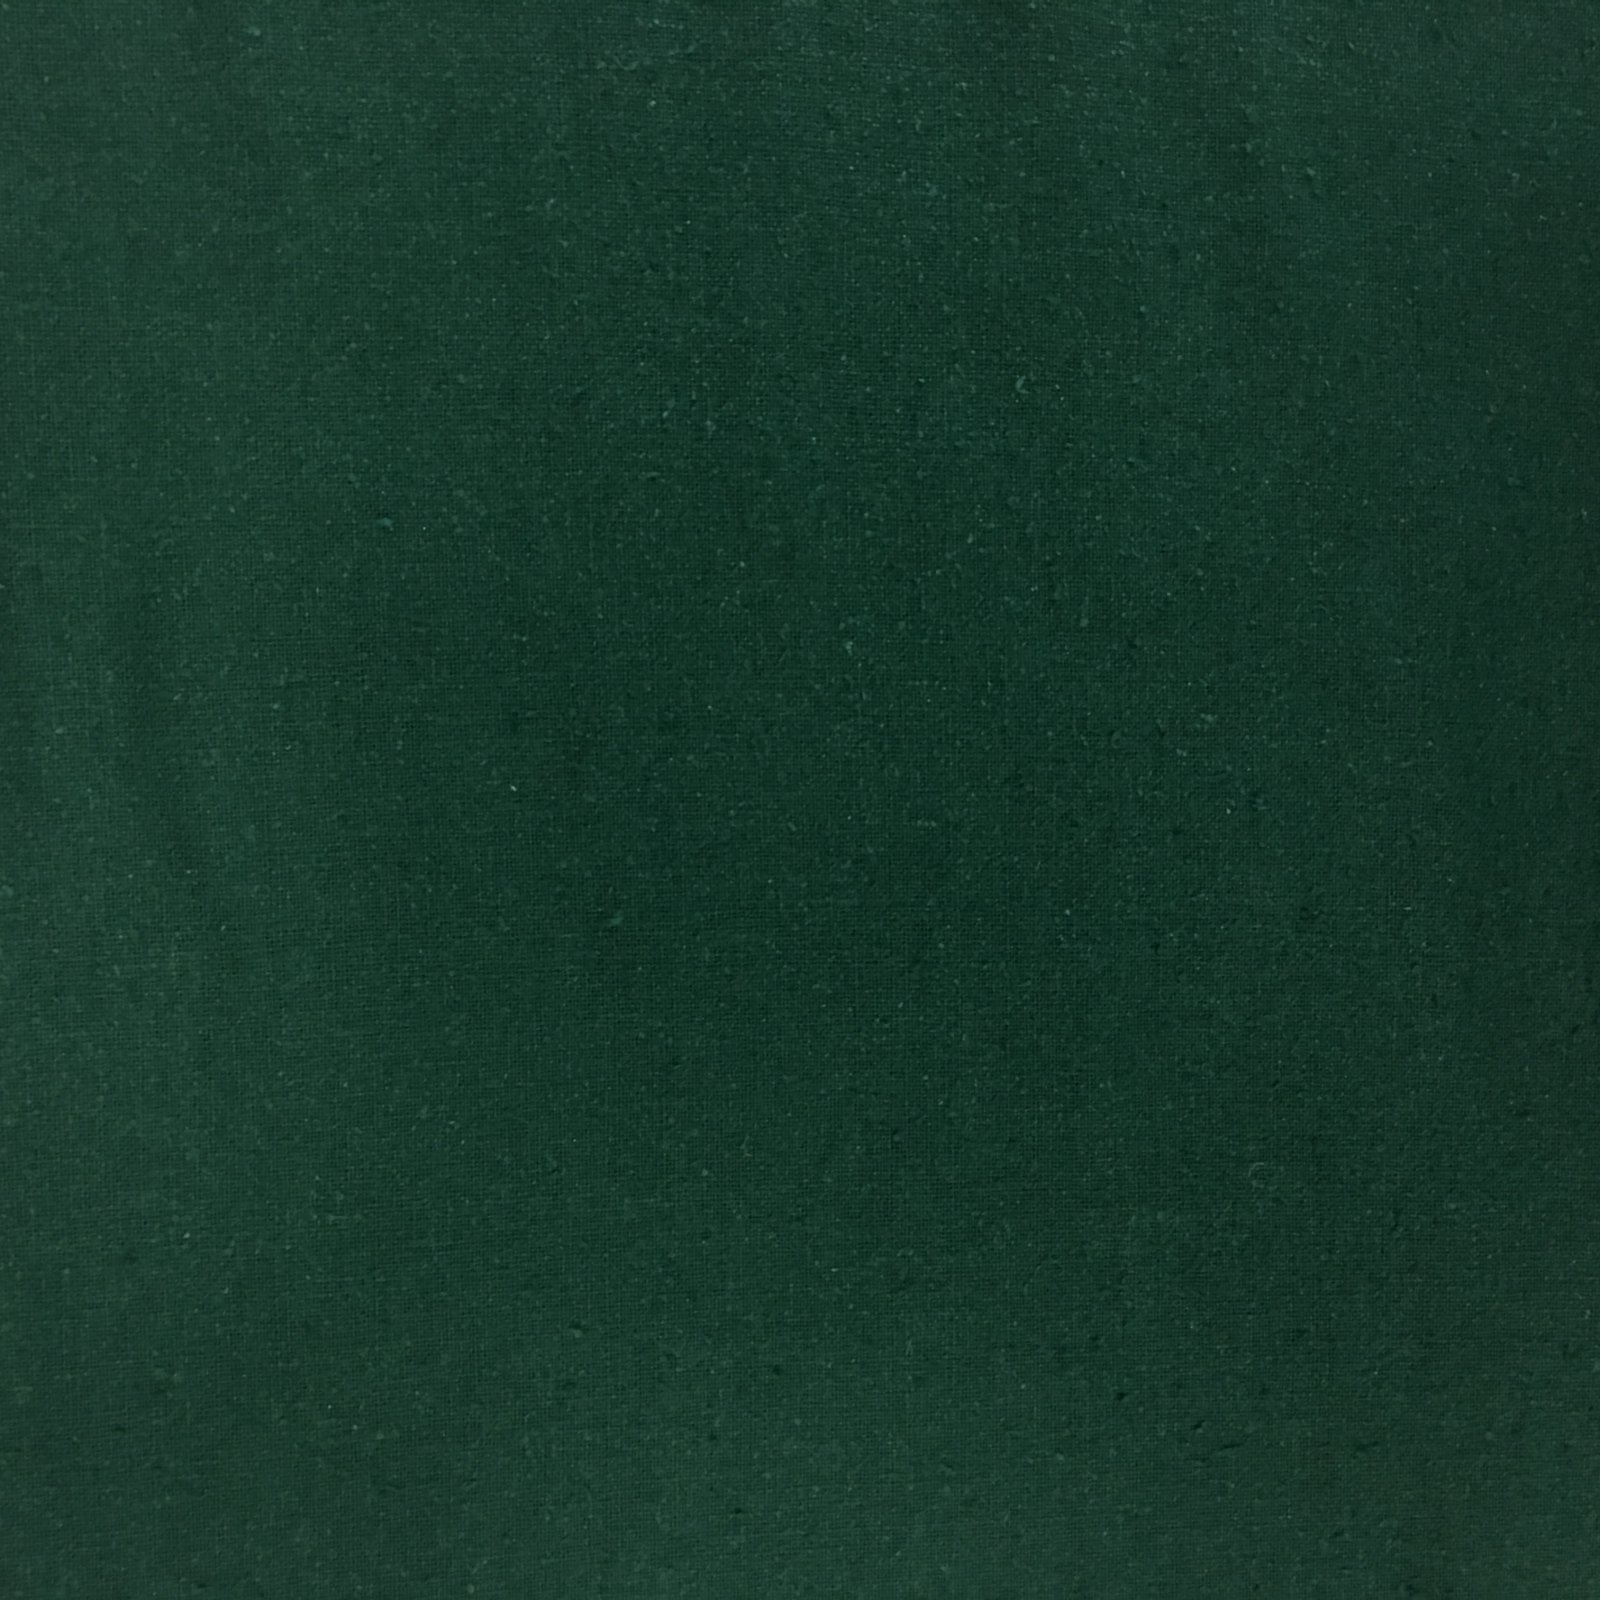 Silk Noil - Teal Green